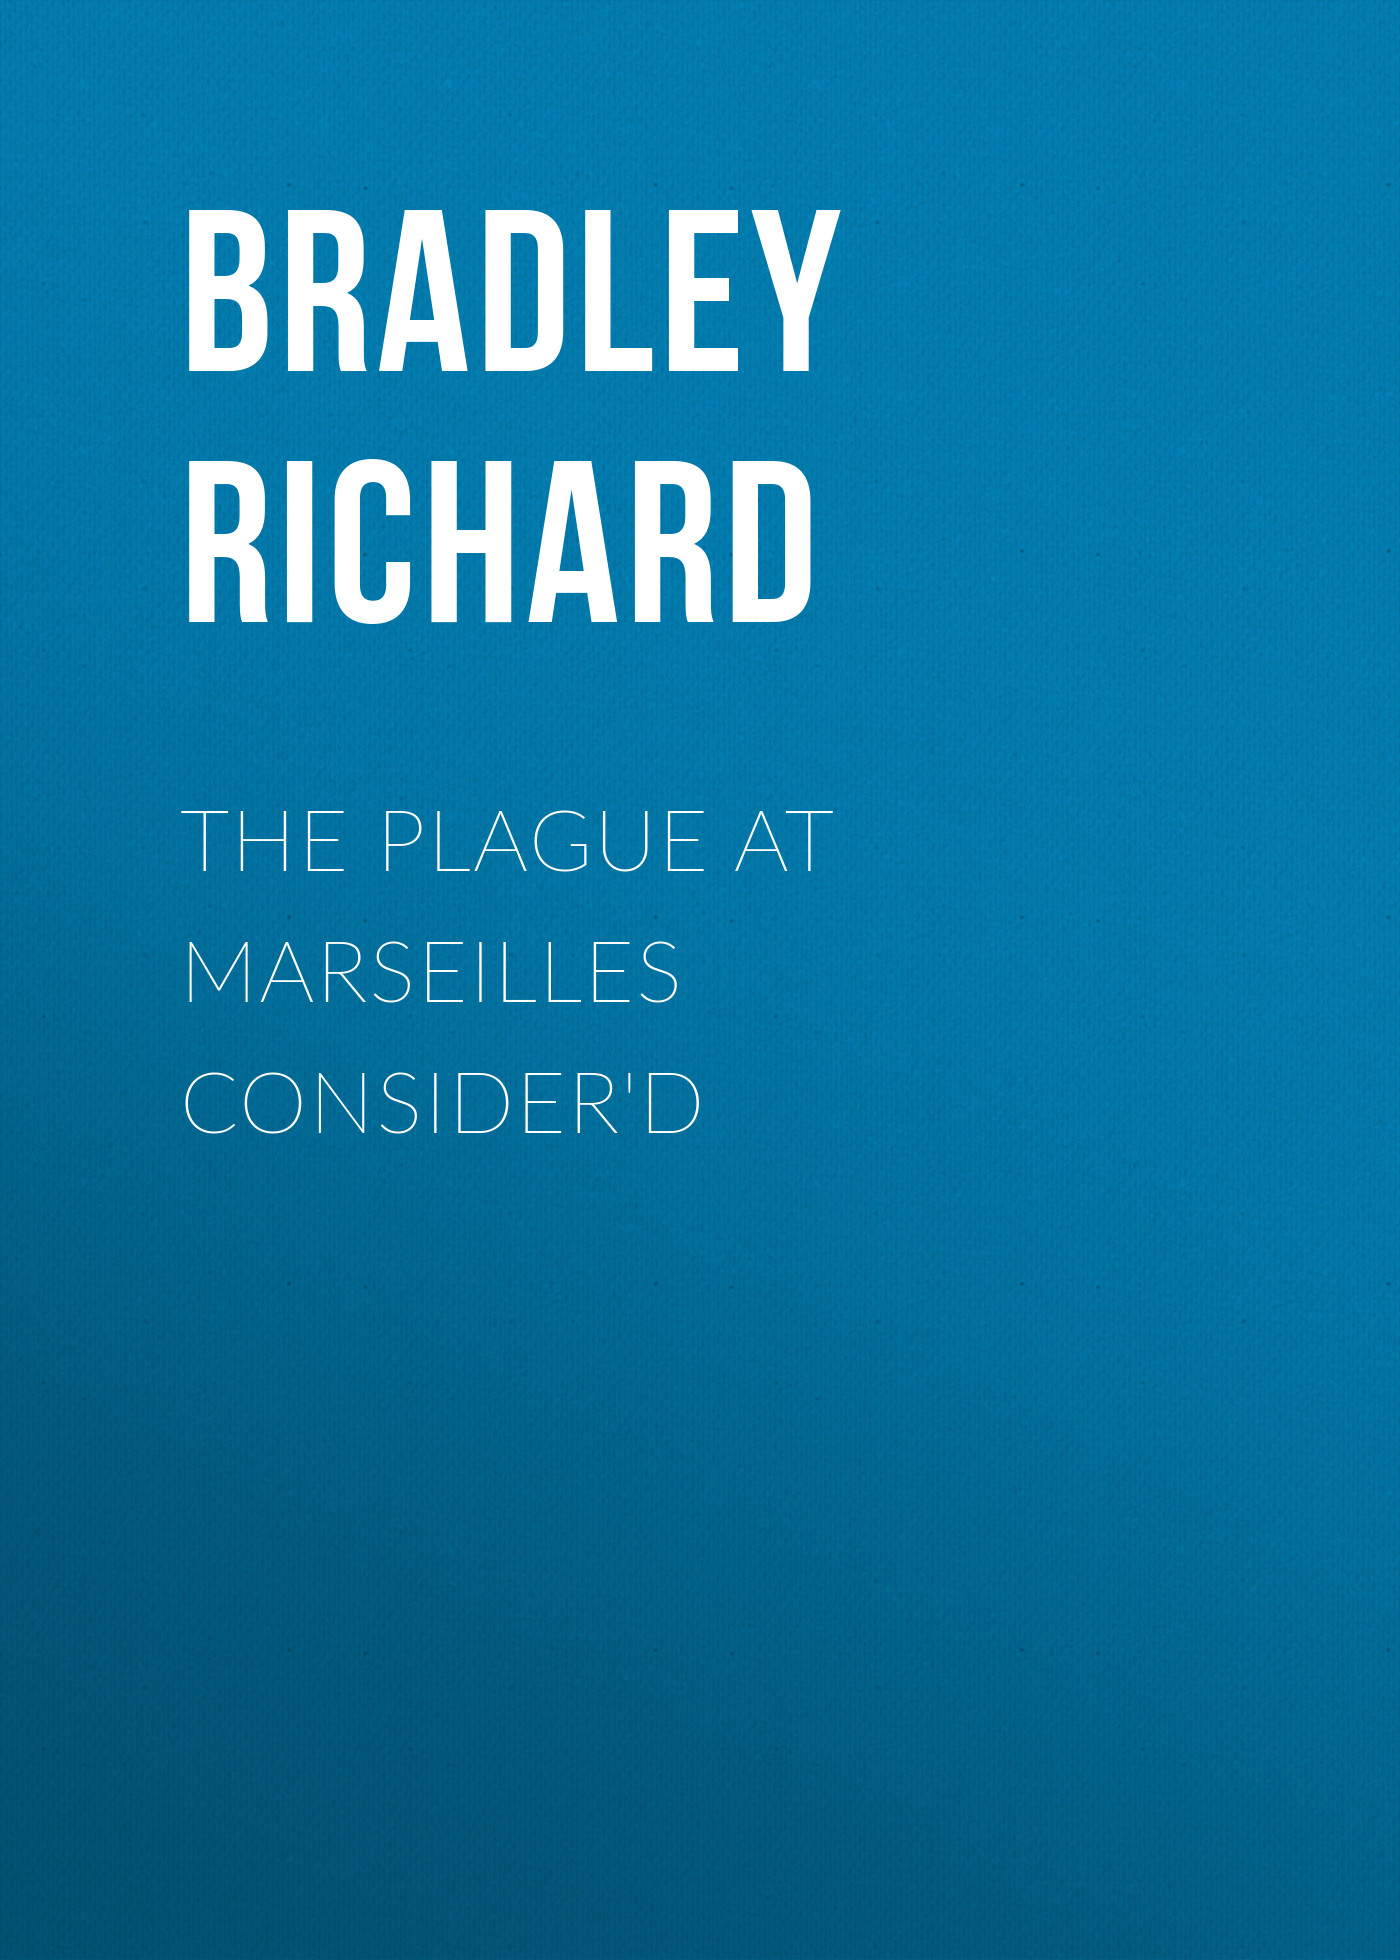 Bradley Richard The Plague at Marseilles Consider'd bradley richard the plague at marseilles consider d